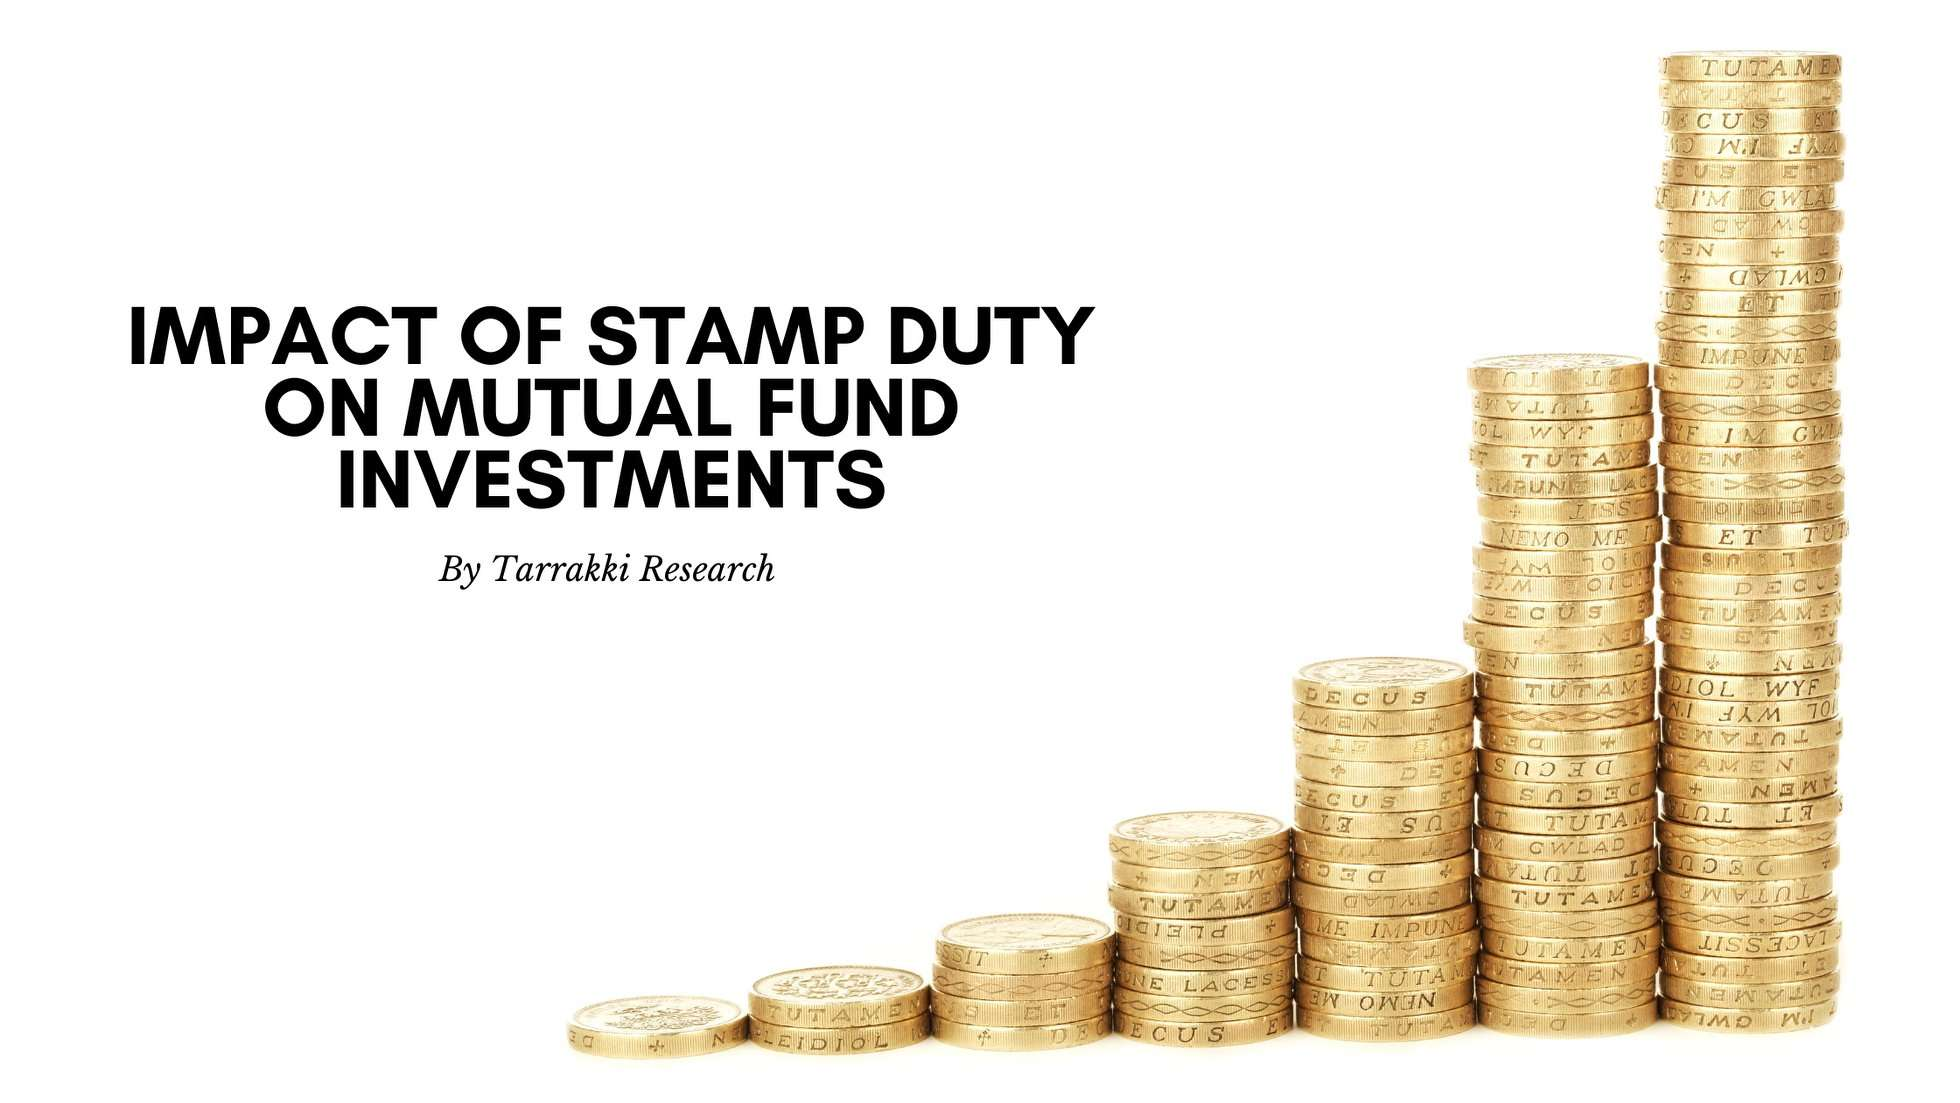 Impact of Stamp Duty on Mutual Fund Investments